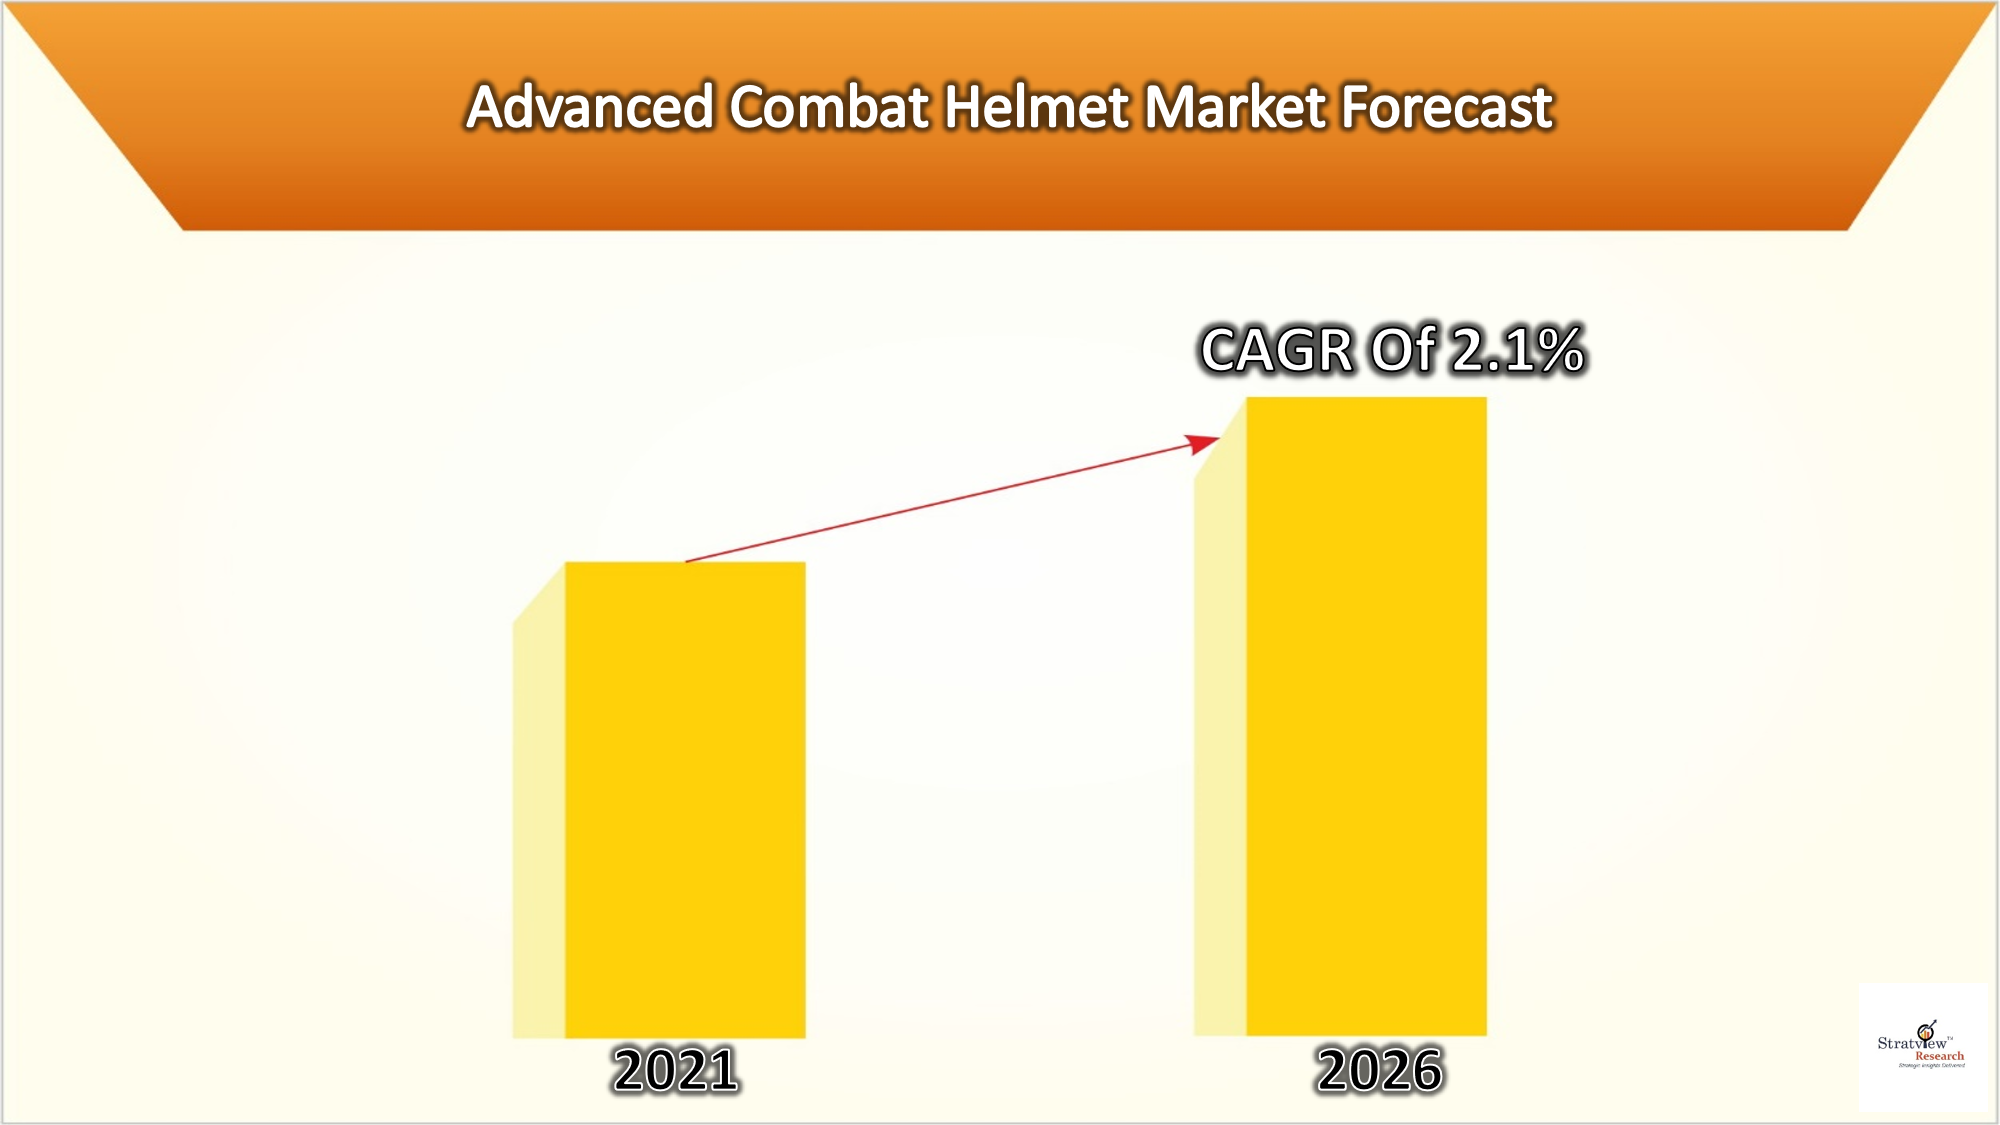 Advanced Combat Helmet market